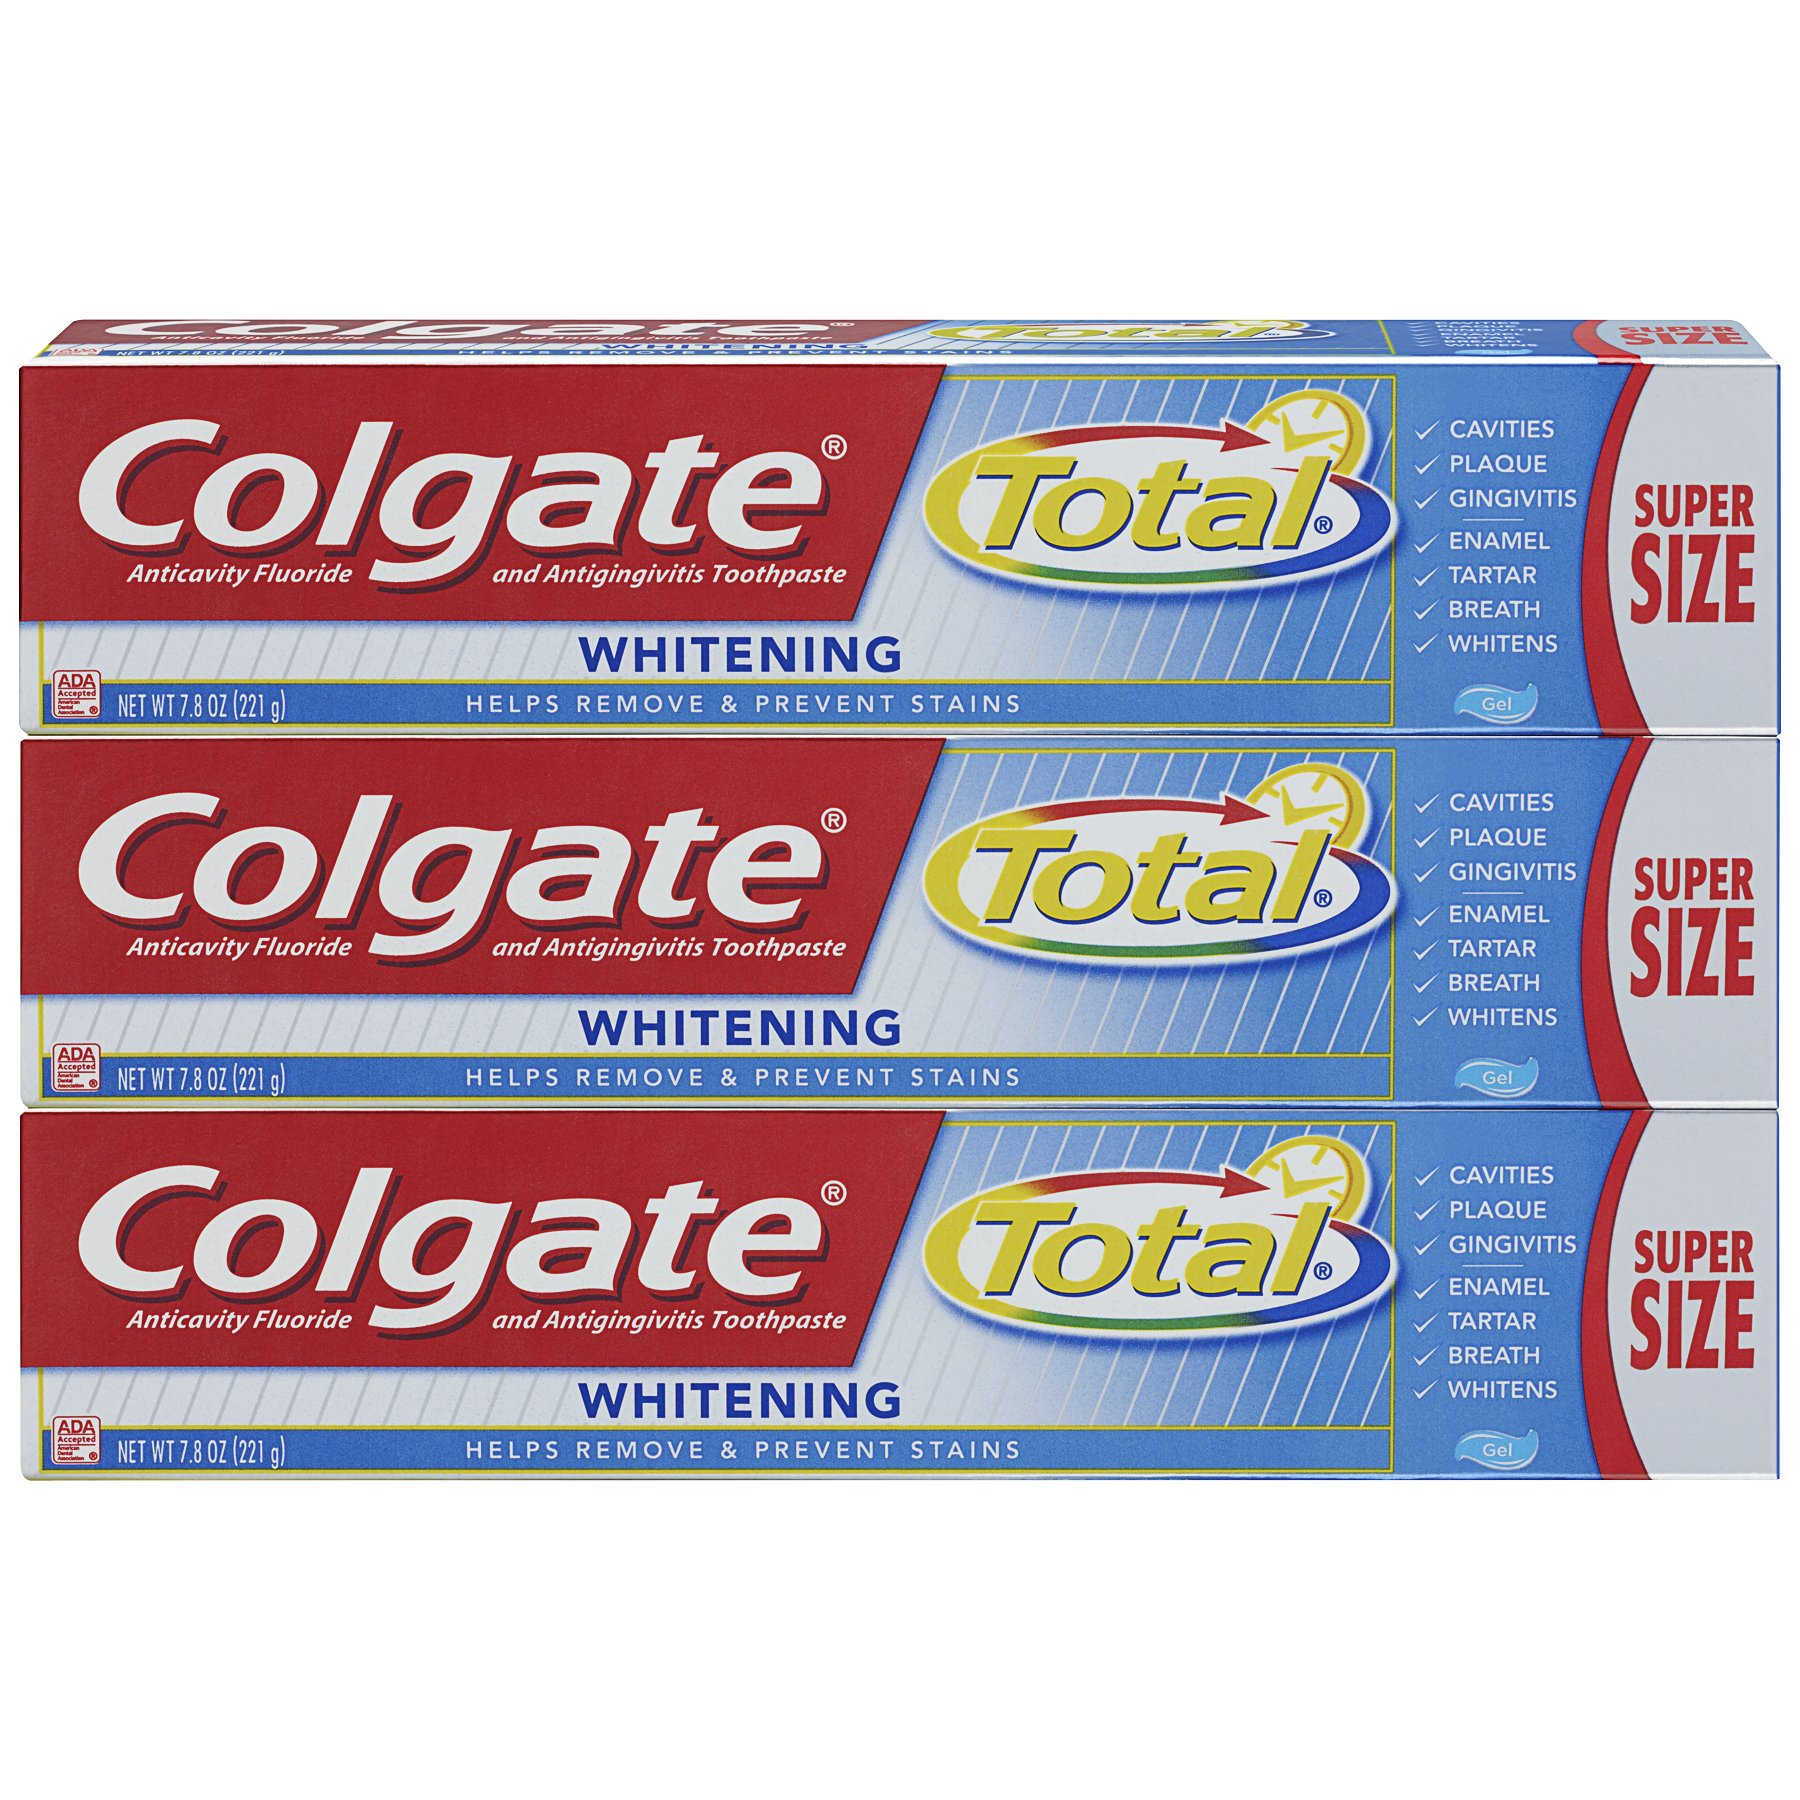 Colgate Total Whitening Toothpaste, Gel - 7.8 ounce (3 Pack) by Colgate (Image #1)